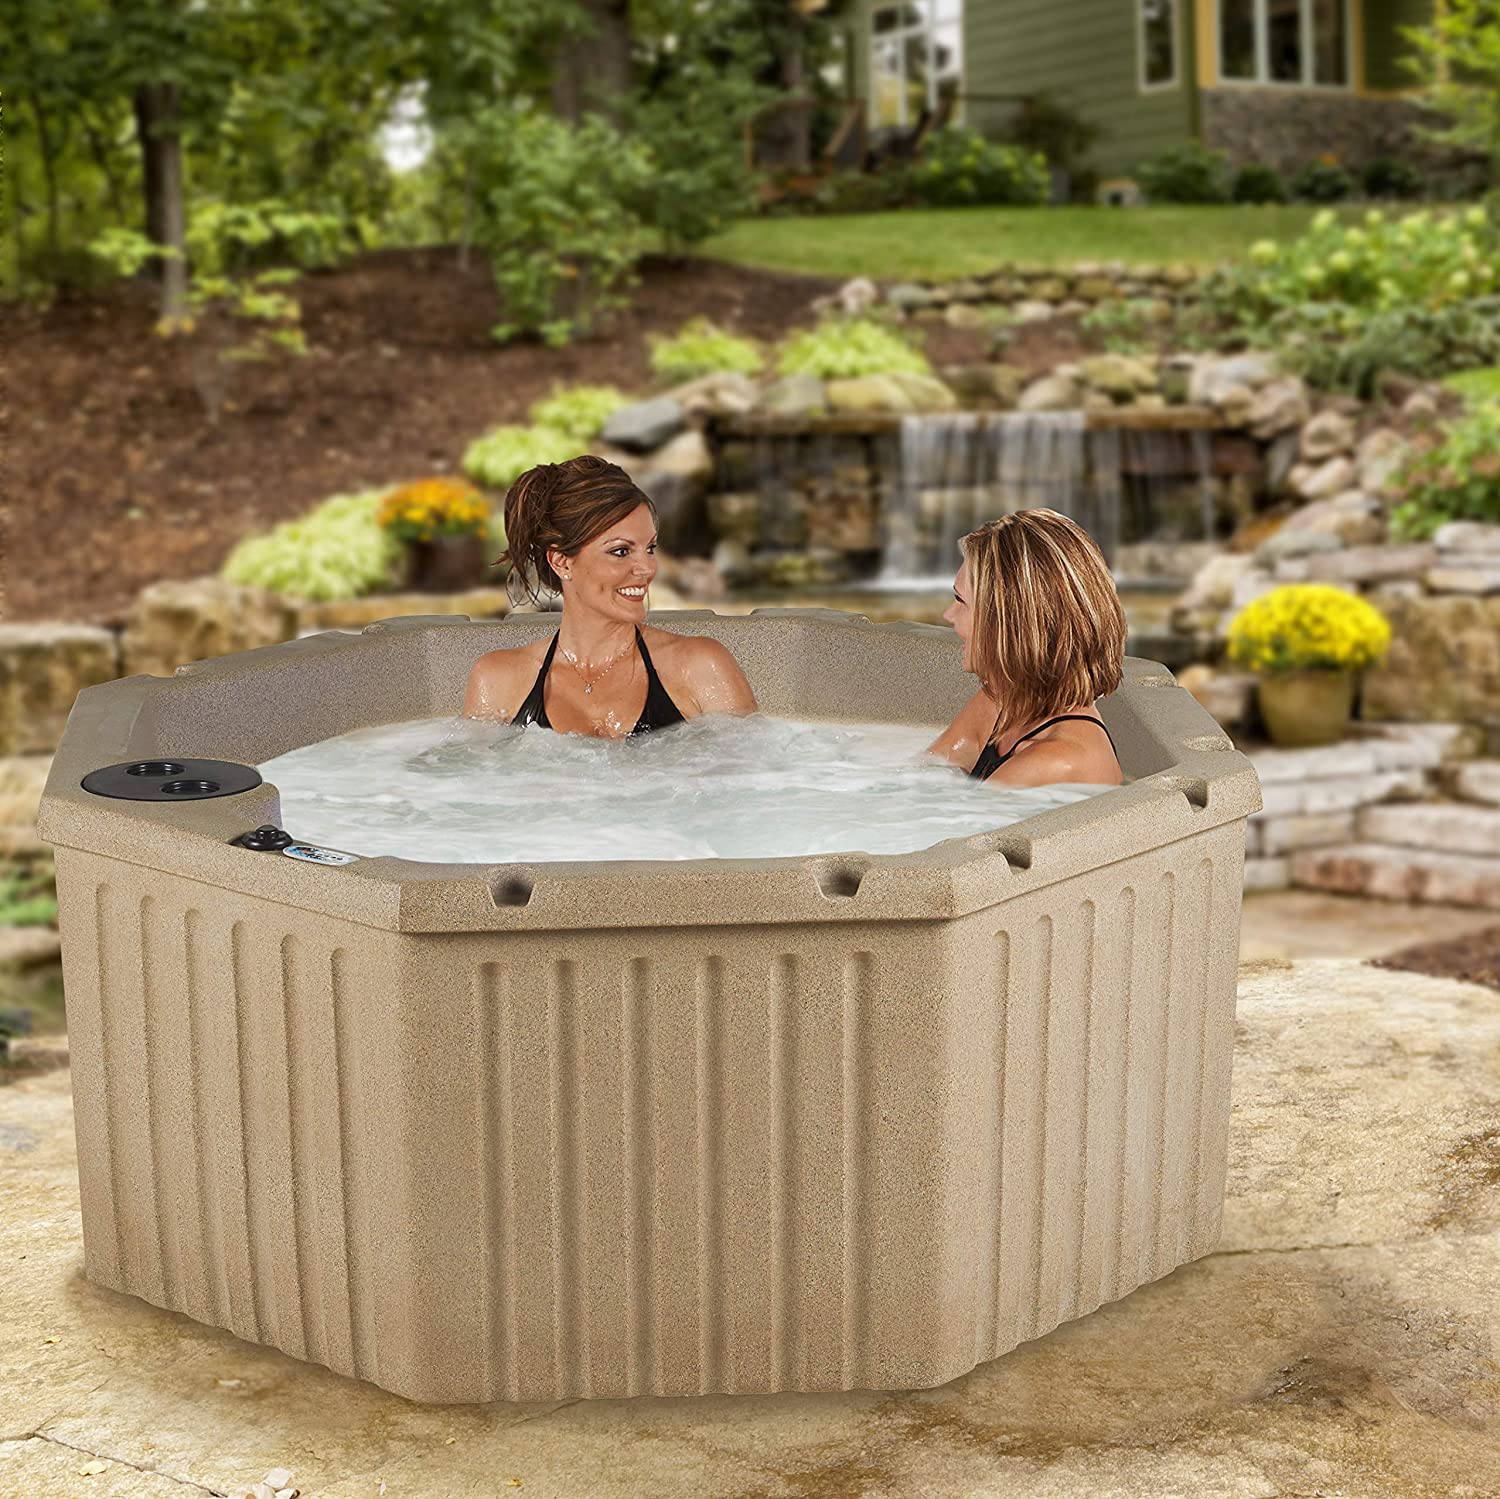 Seats 4-5 Millstone Essential Hot Tubs 11-Jet 2020 Integrity Hot Tub